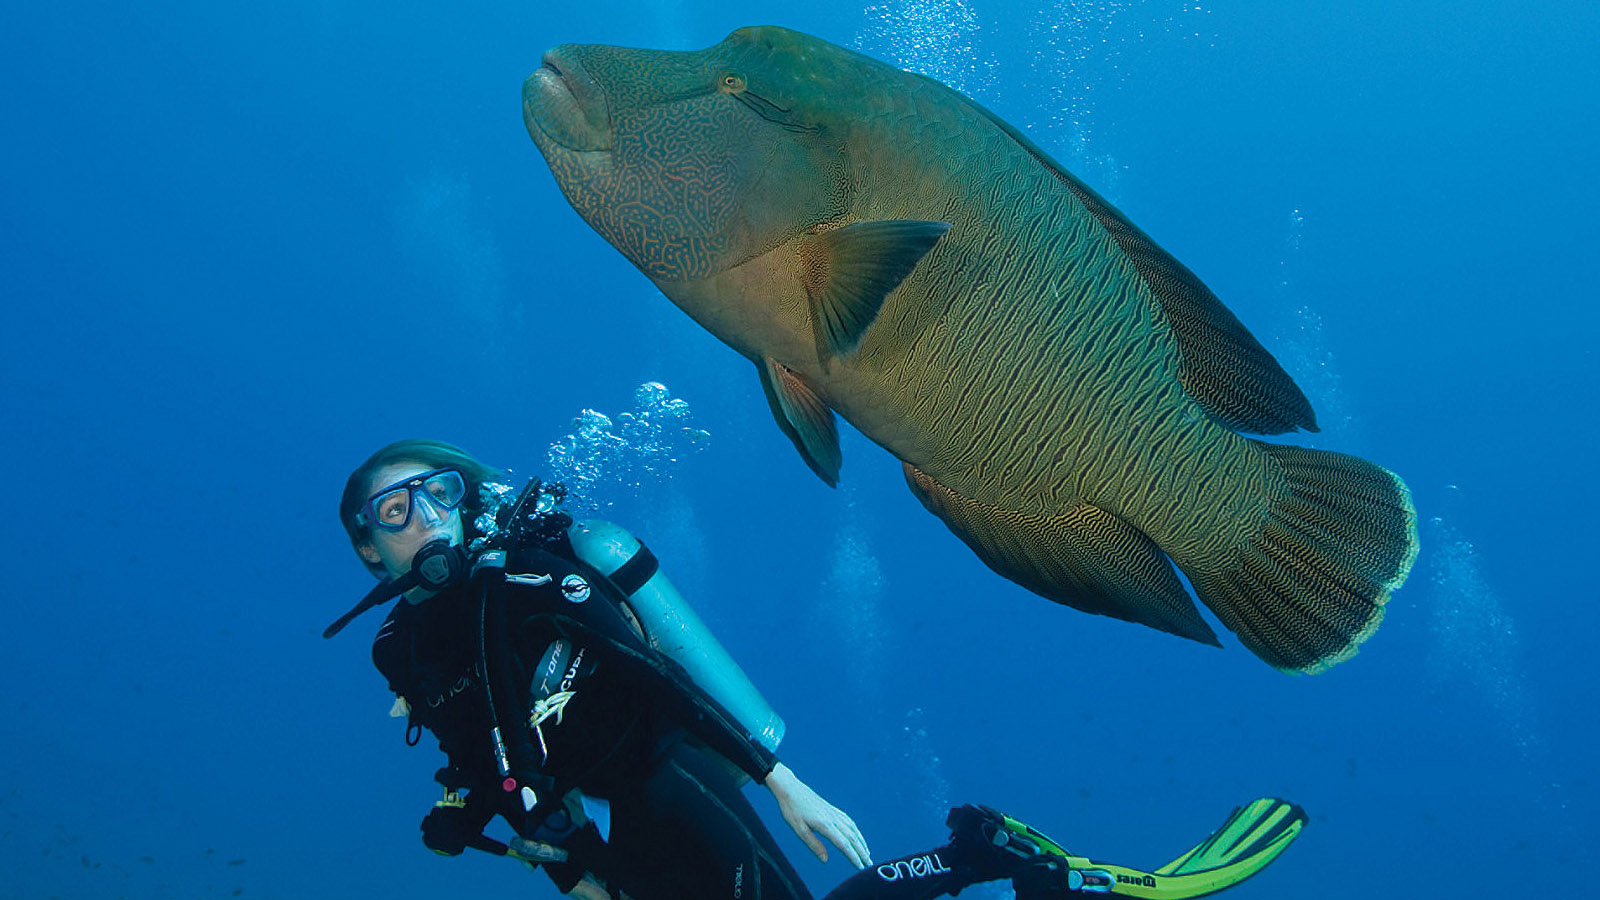 Dive Discovery Package Offered at Four Seasons Resort Maldives at Kuda Huraa, a 5-Star Resort in the Maldives